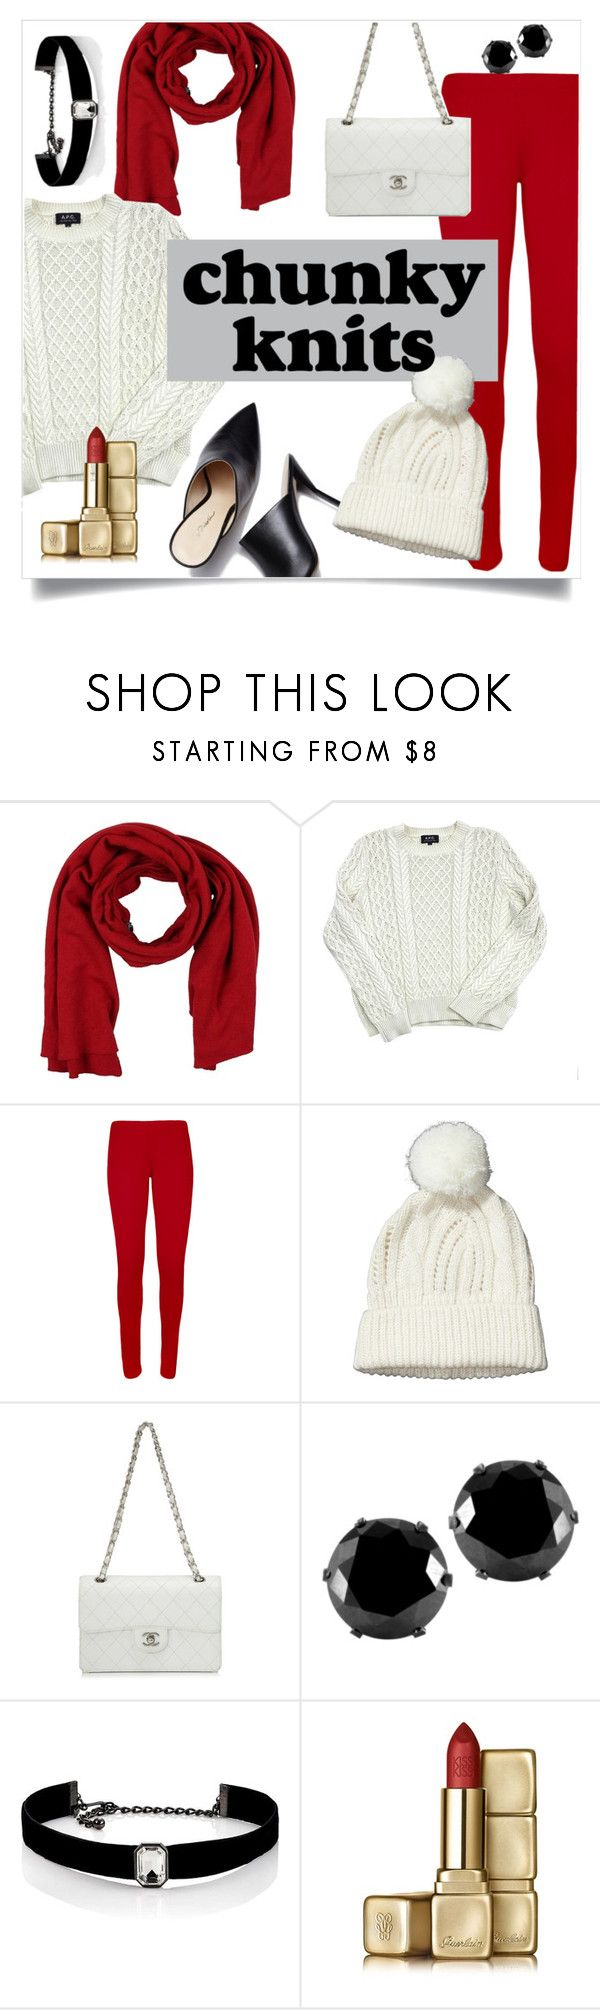 """""""Chunky Knits"""" by queen3264 ❤ liked on Polyvore featuring Ermanno Scervino, A.P.C., WearAll, Chanel, West Coast Jewelry, Kenneth Jay Lane, Guerlain, Jumpers, sweaters and knits"""